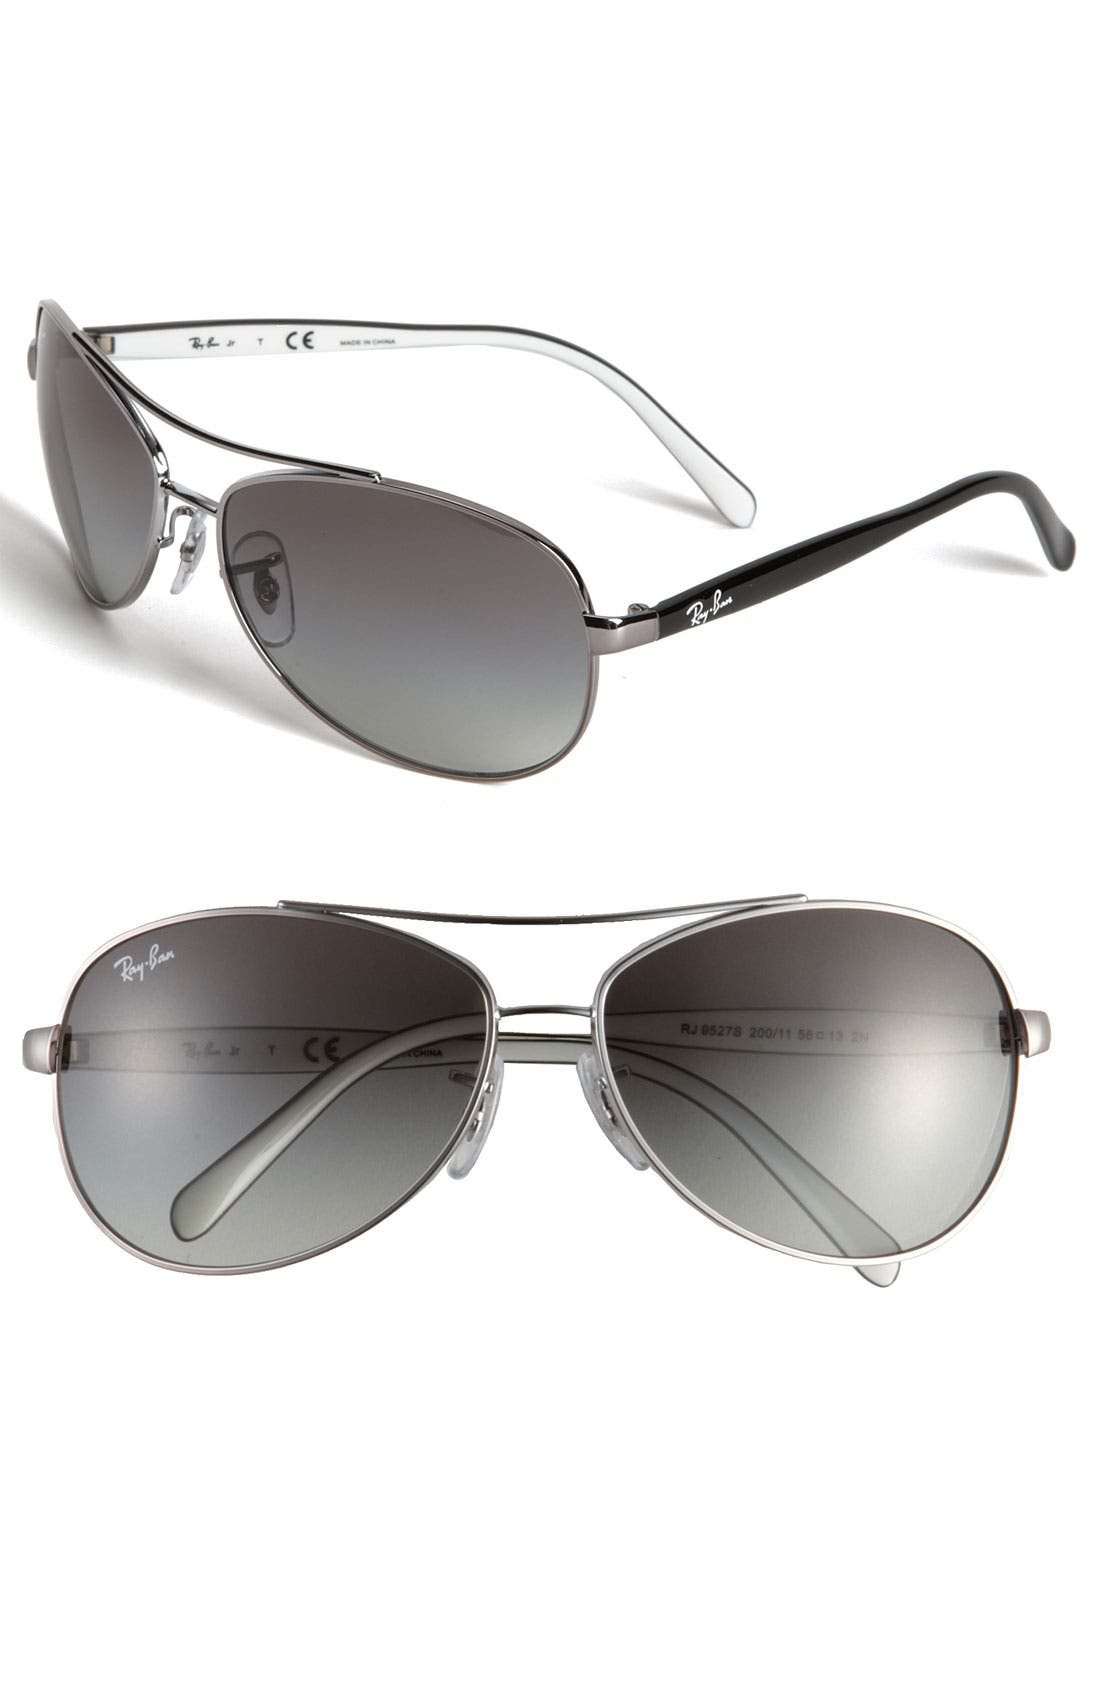 Alternate Image 1 Selected - Ray-Ban Aviator 56mm Sunglasses (Boys)